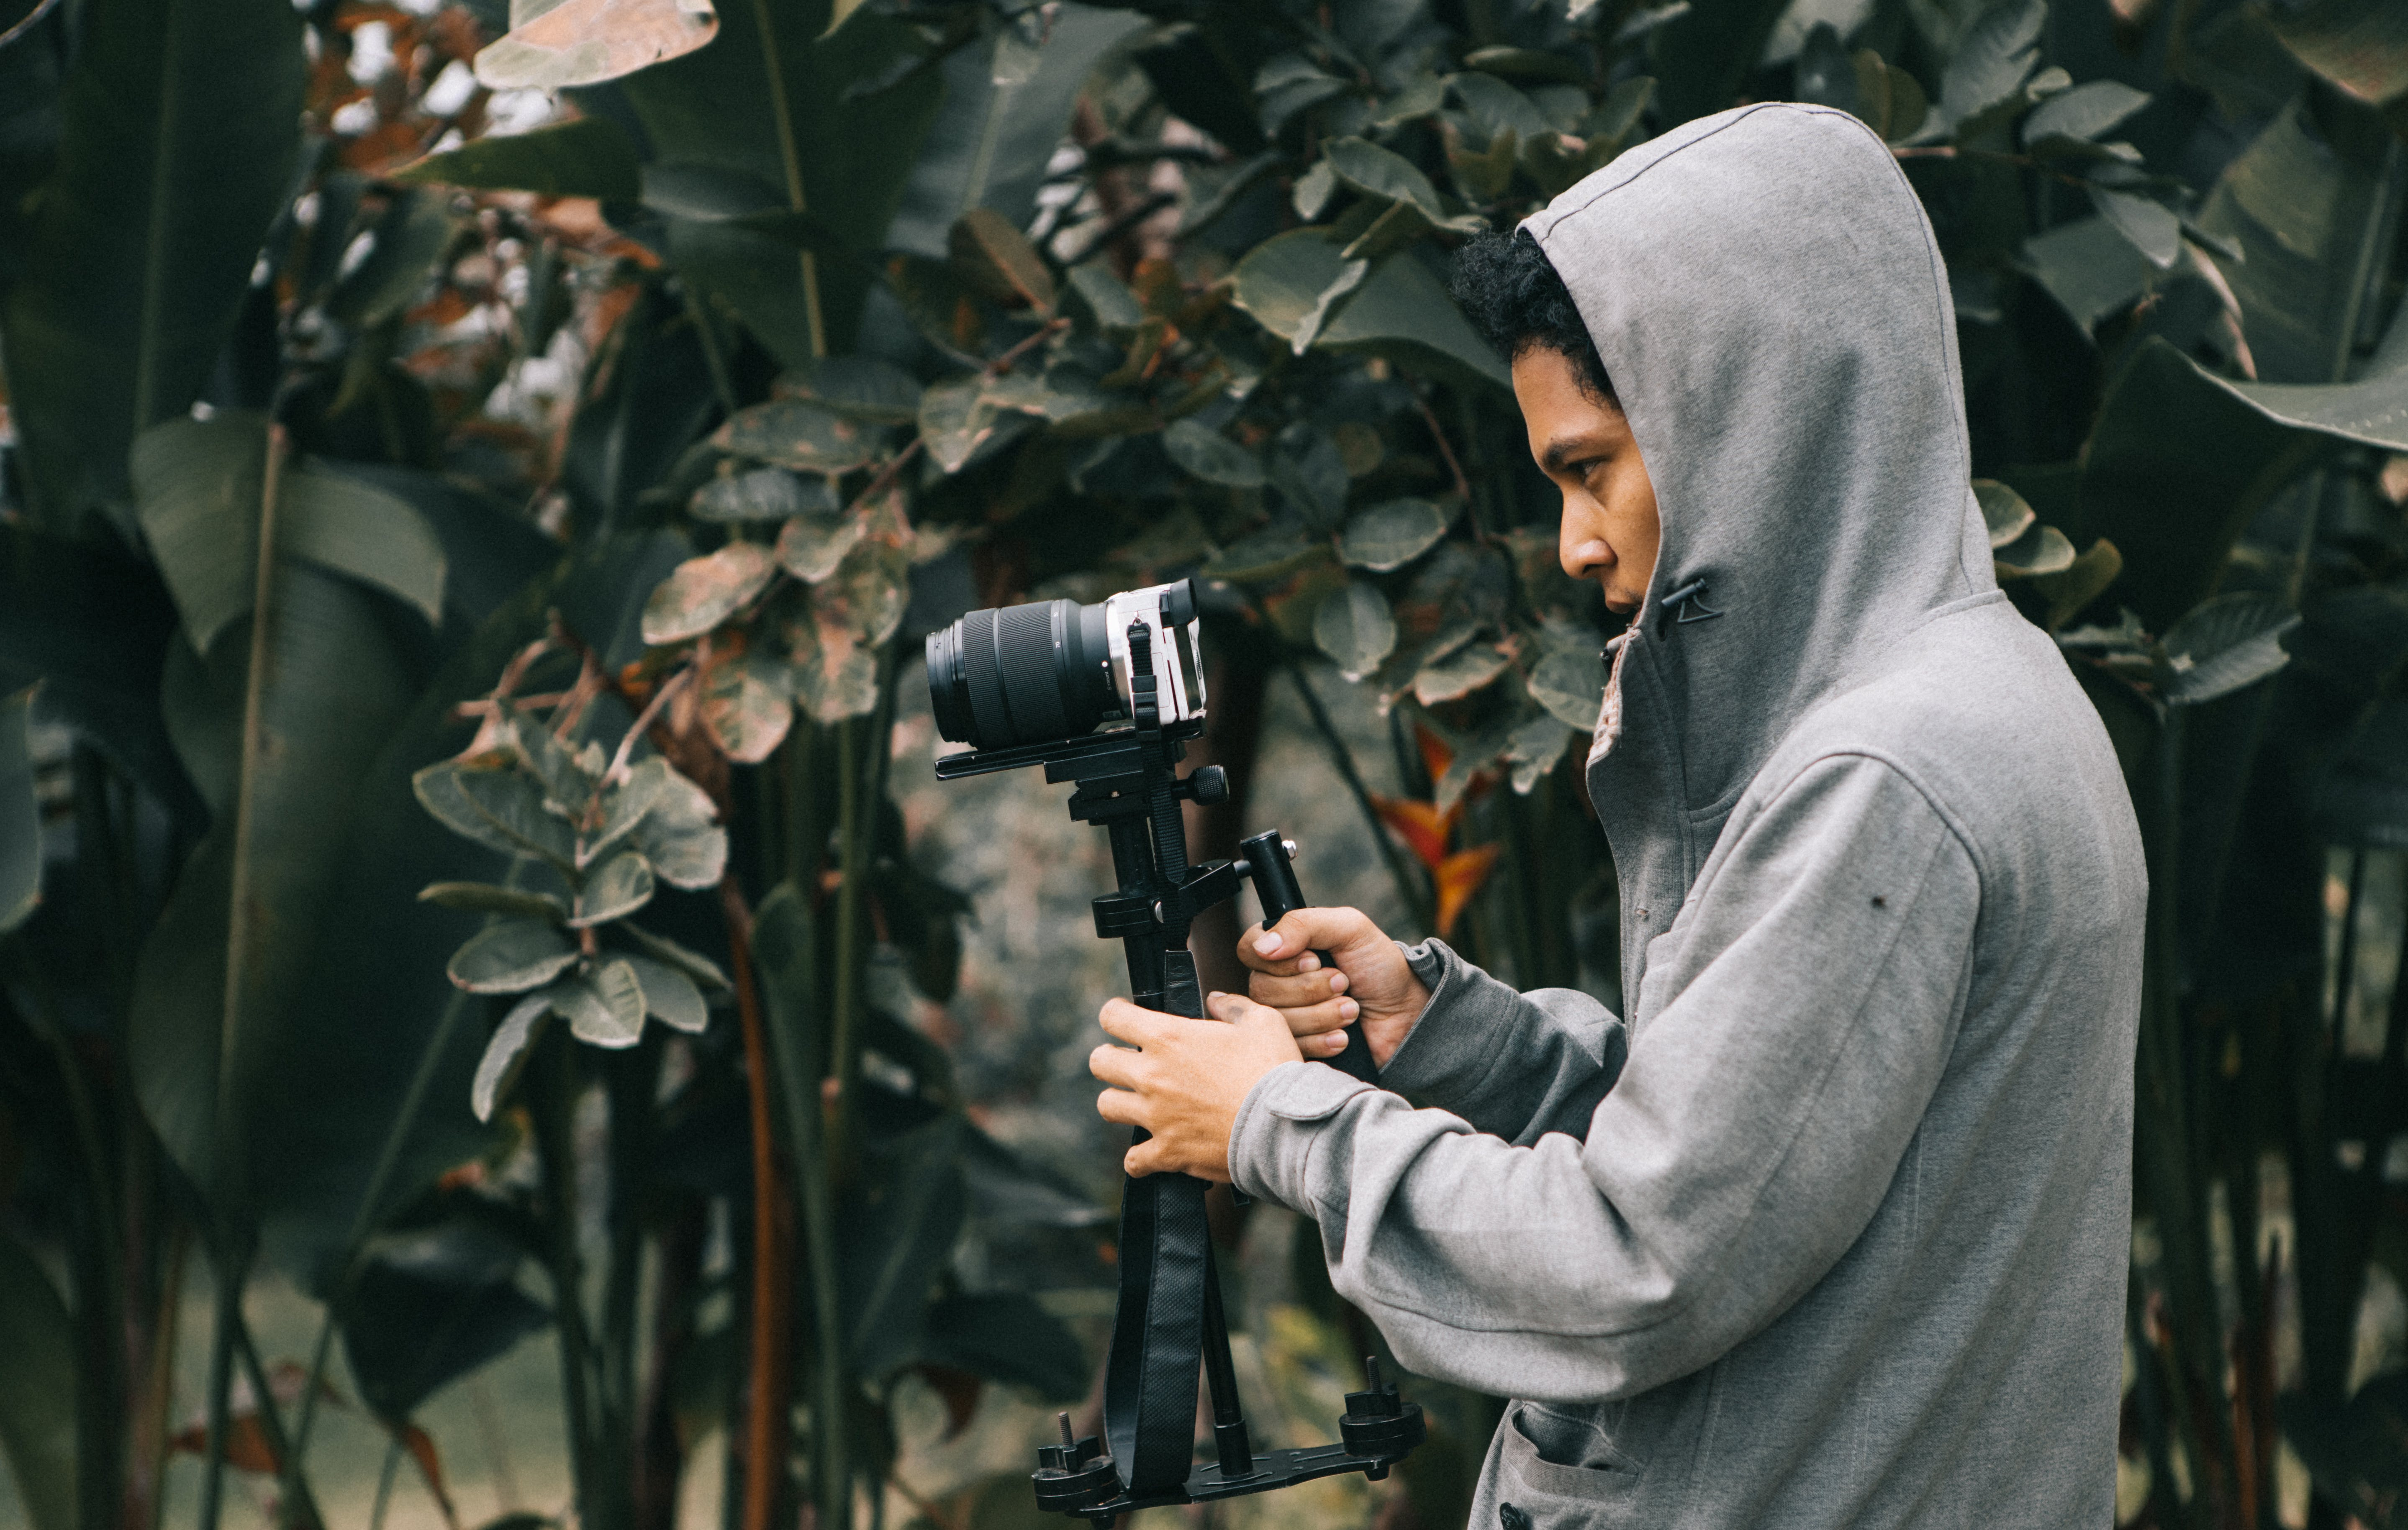 Man in Hooded Jacket Holding Camera With Stablizer